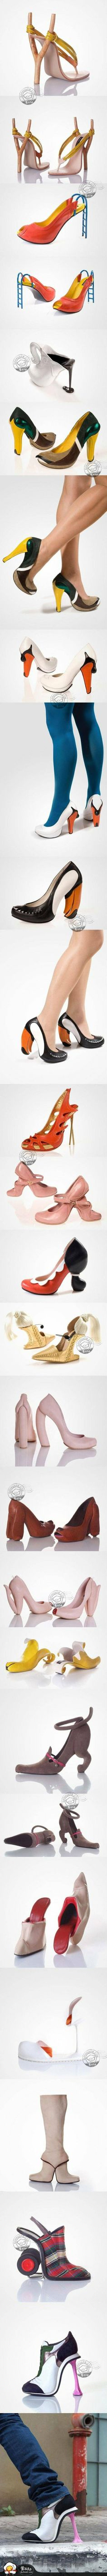 #shoes  #fashion So many high-heeled shoes, which pair is best for you